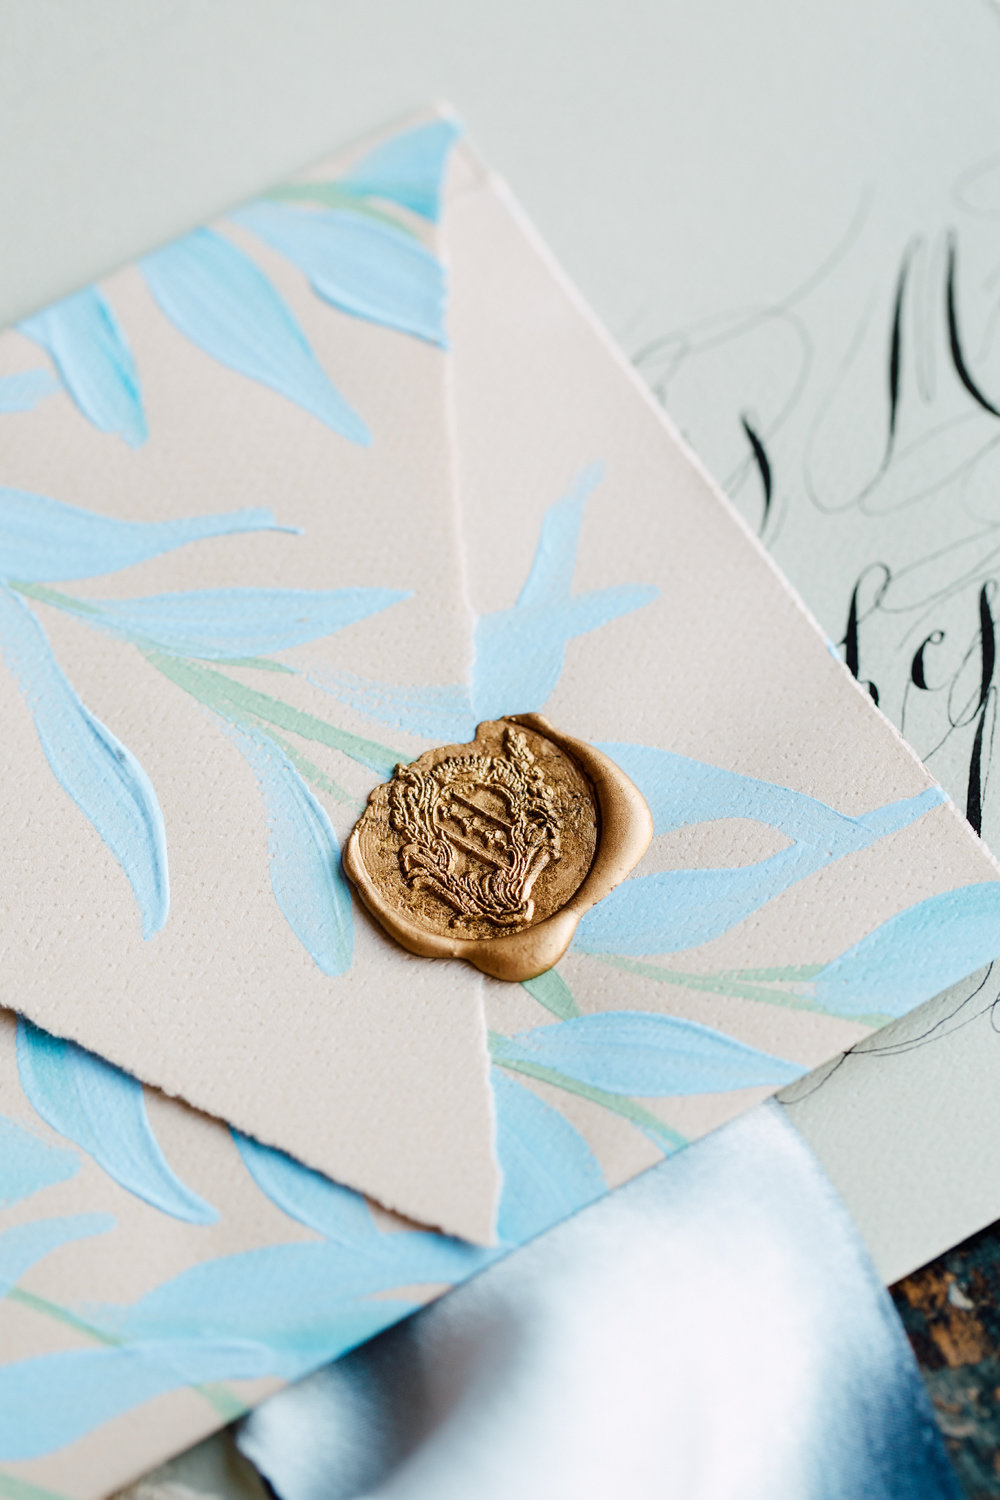 French Wedding Invitations - blue leaves hand painted envelope detail with a rich gold wax seal